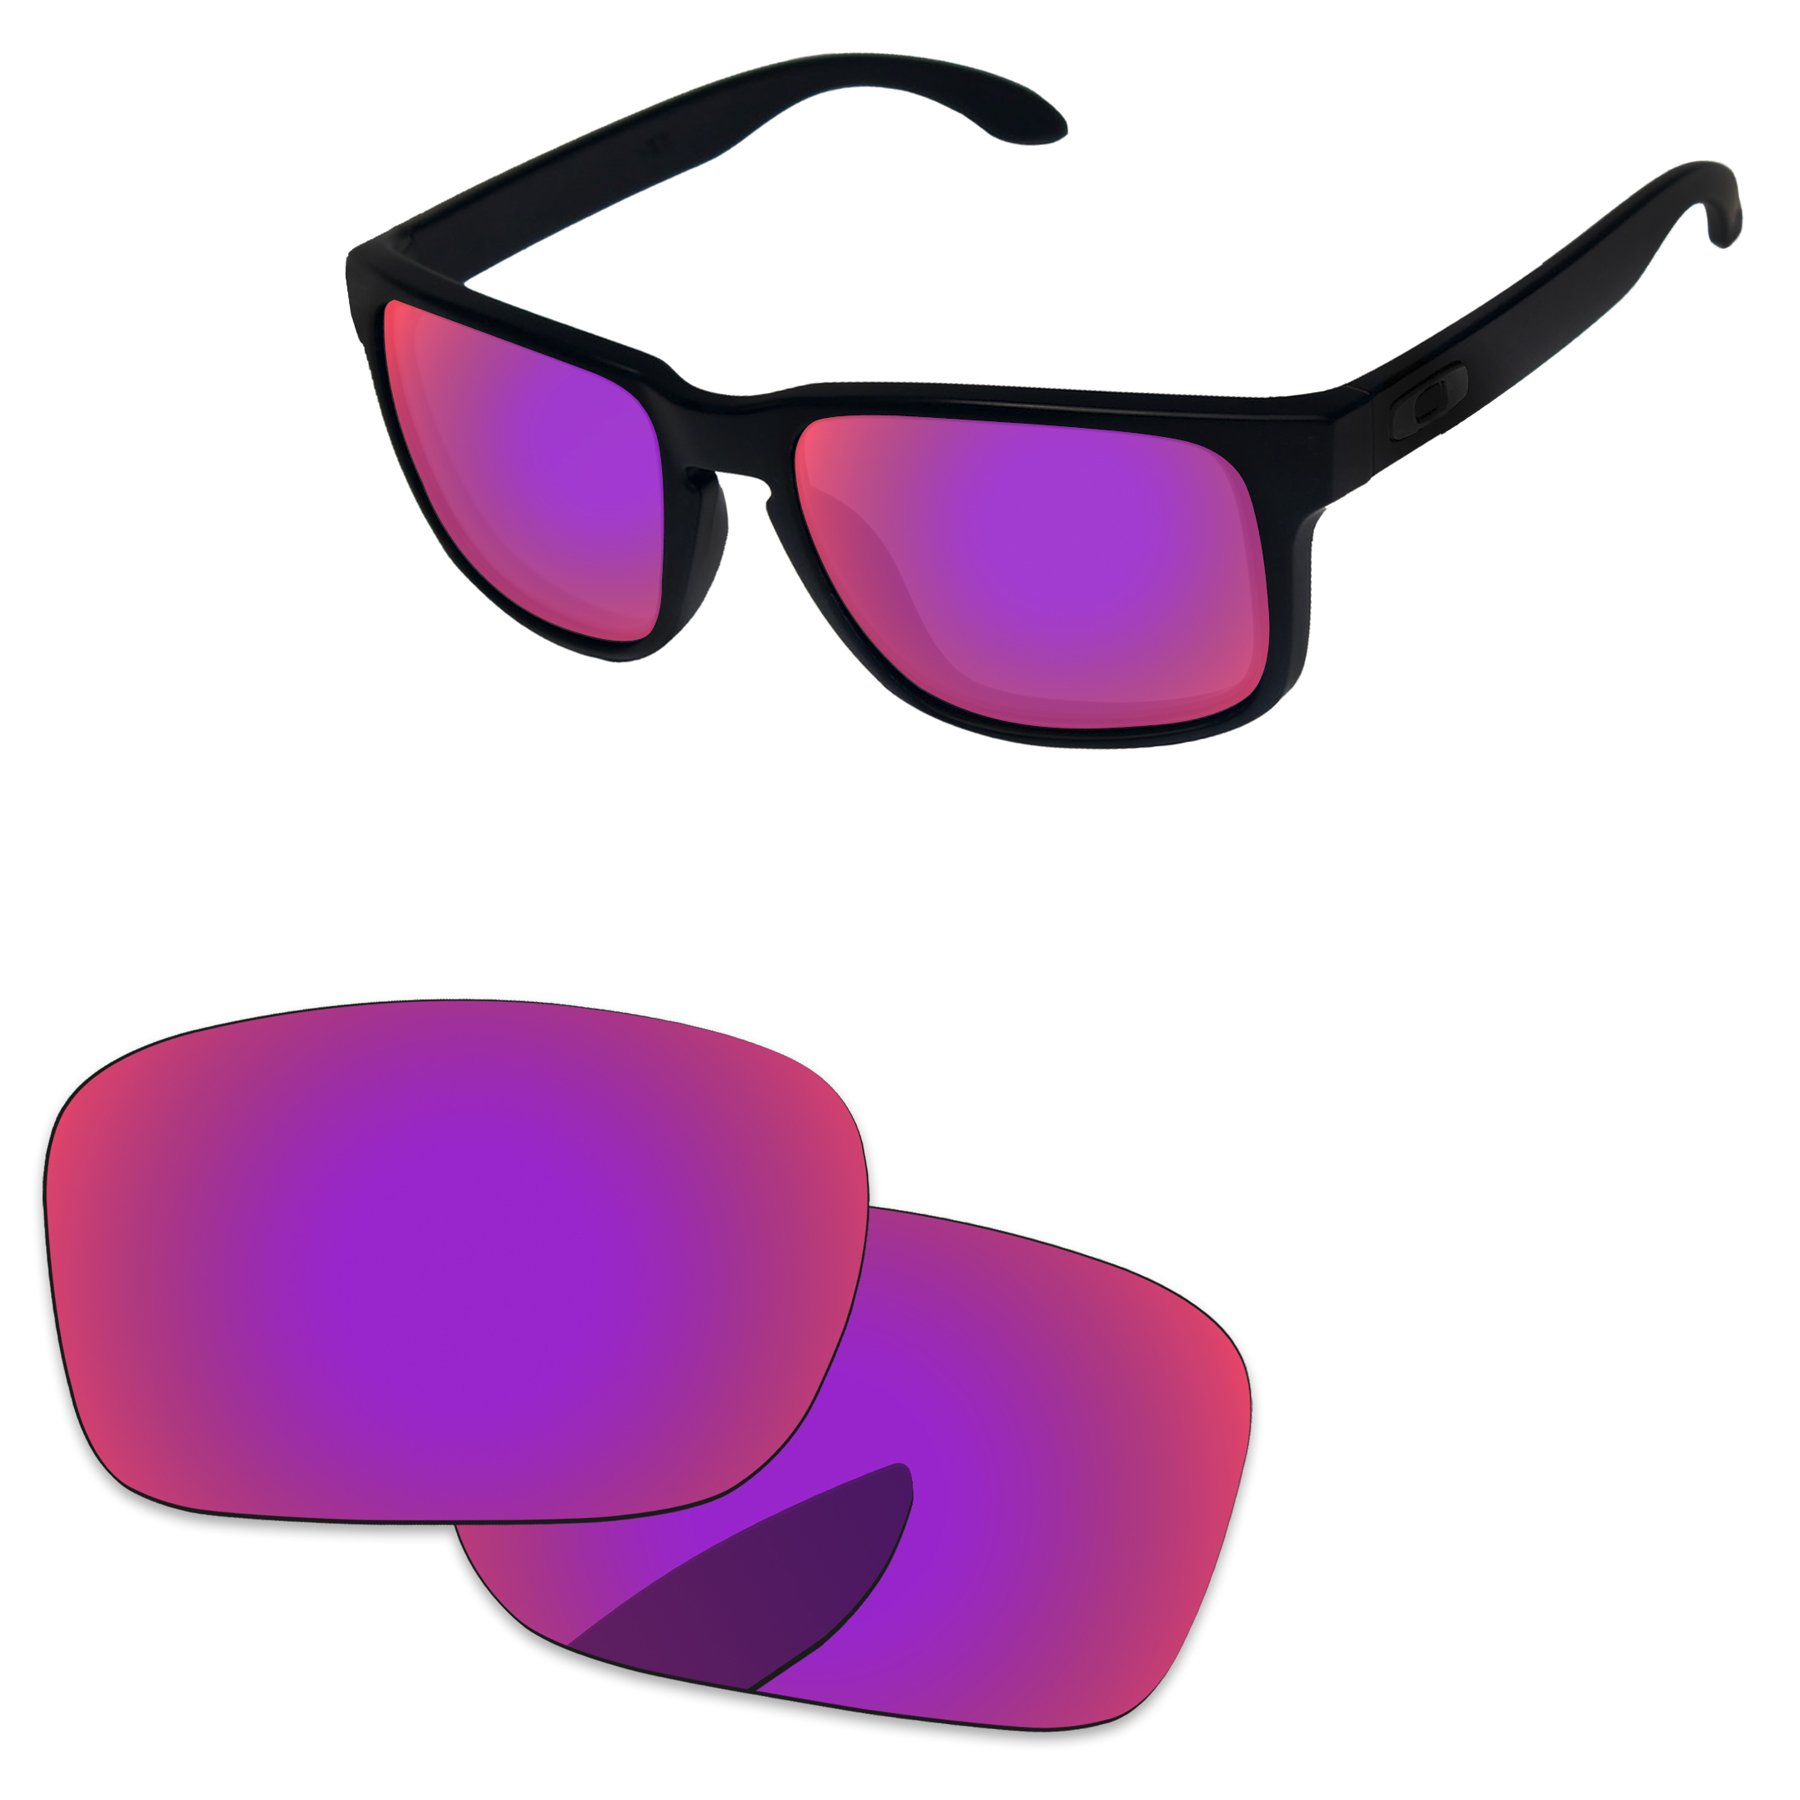 PapaViva Replacement Lenses for Oakley Holbrook Midnight Sun - Polarized